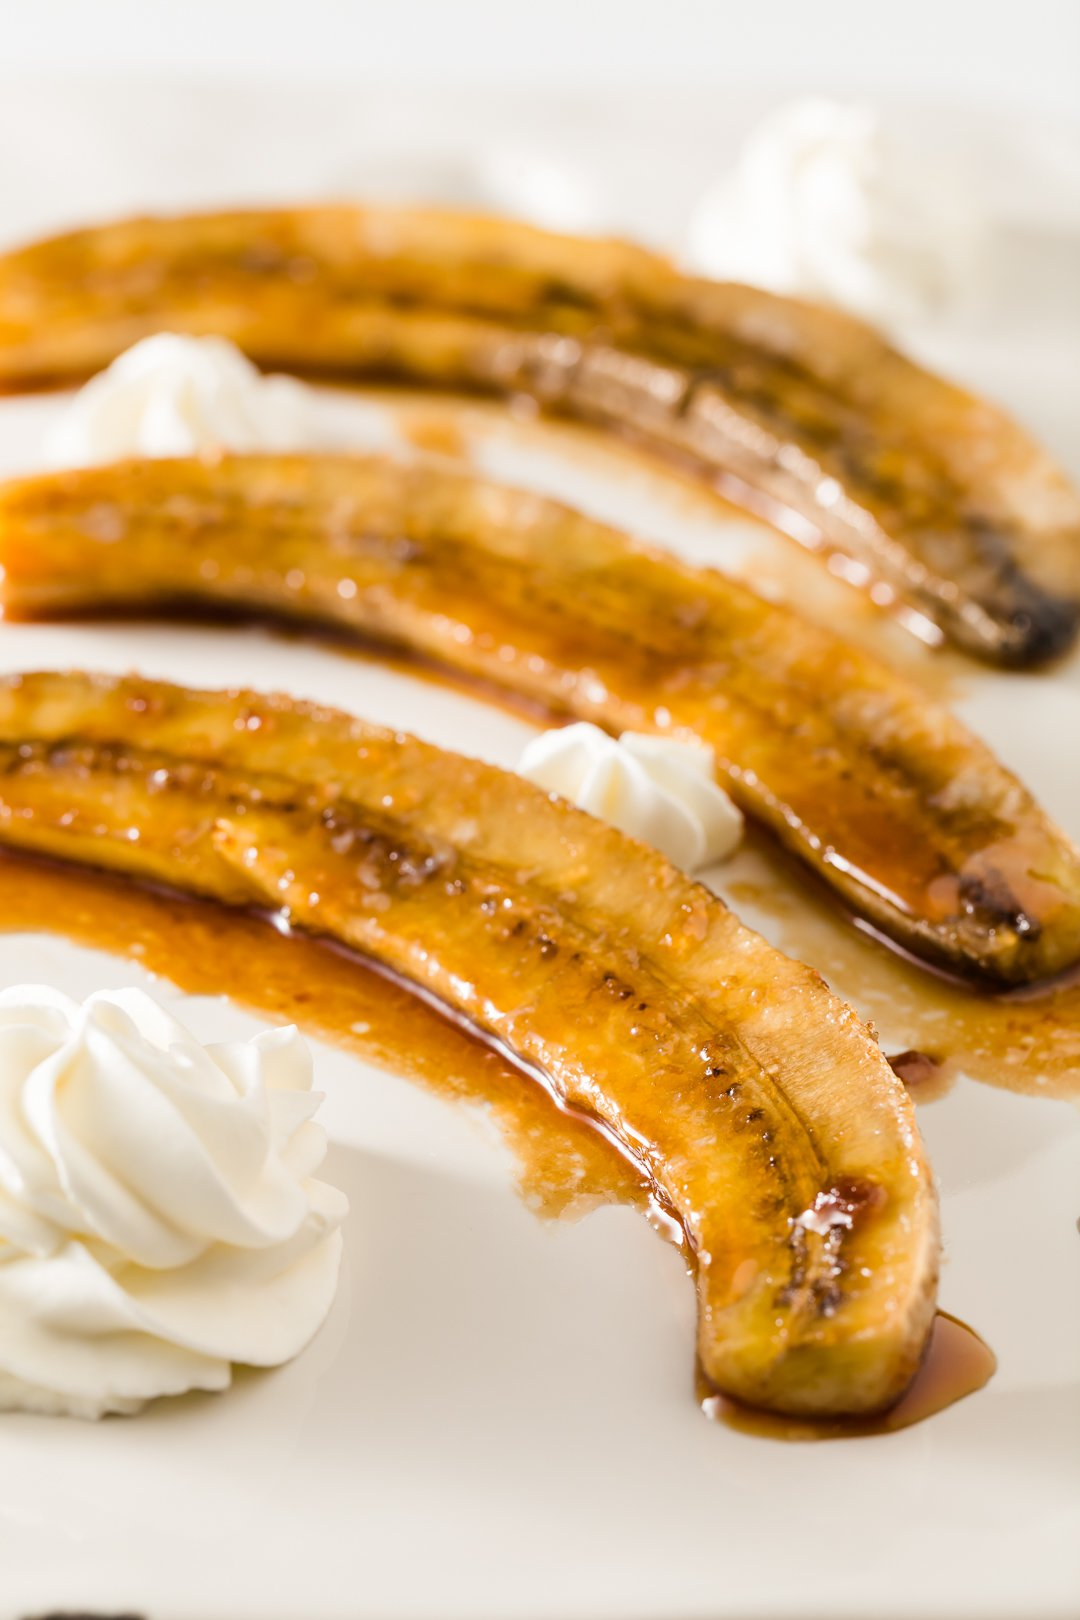 caramelized banana halves on a plate with whipped cream